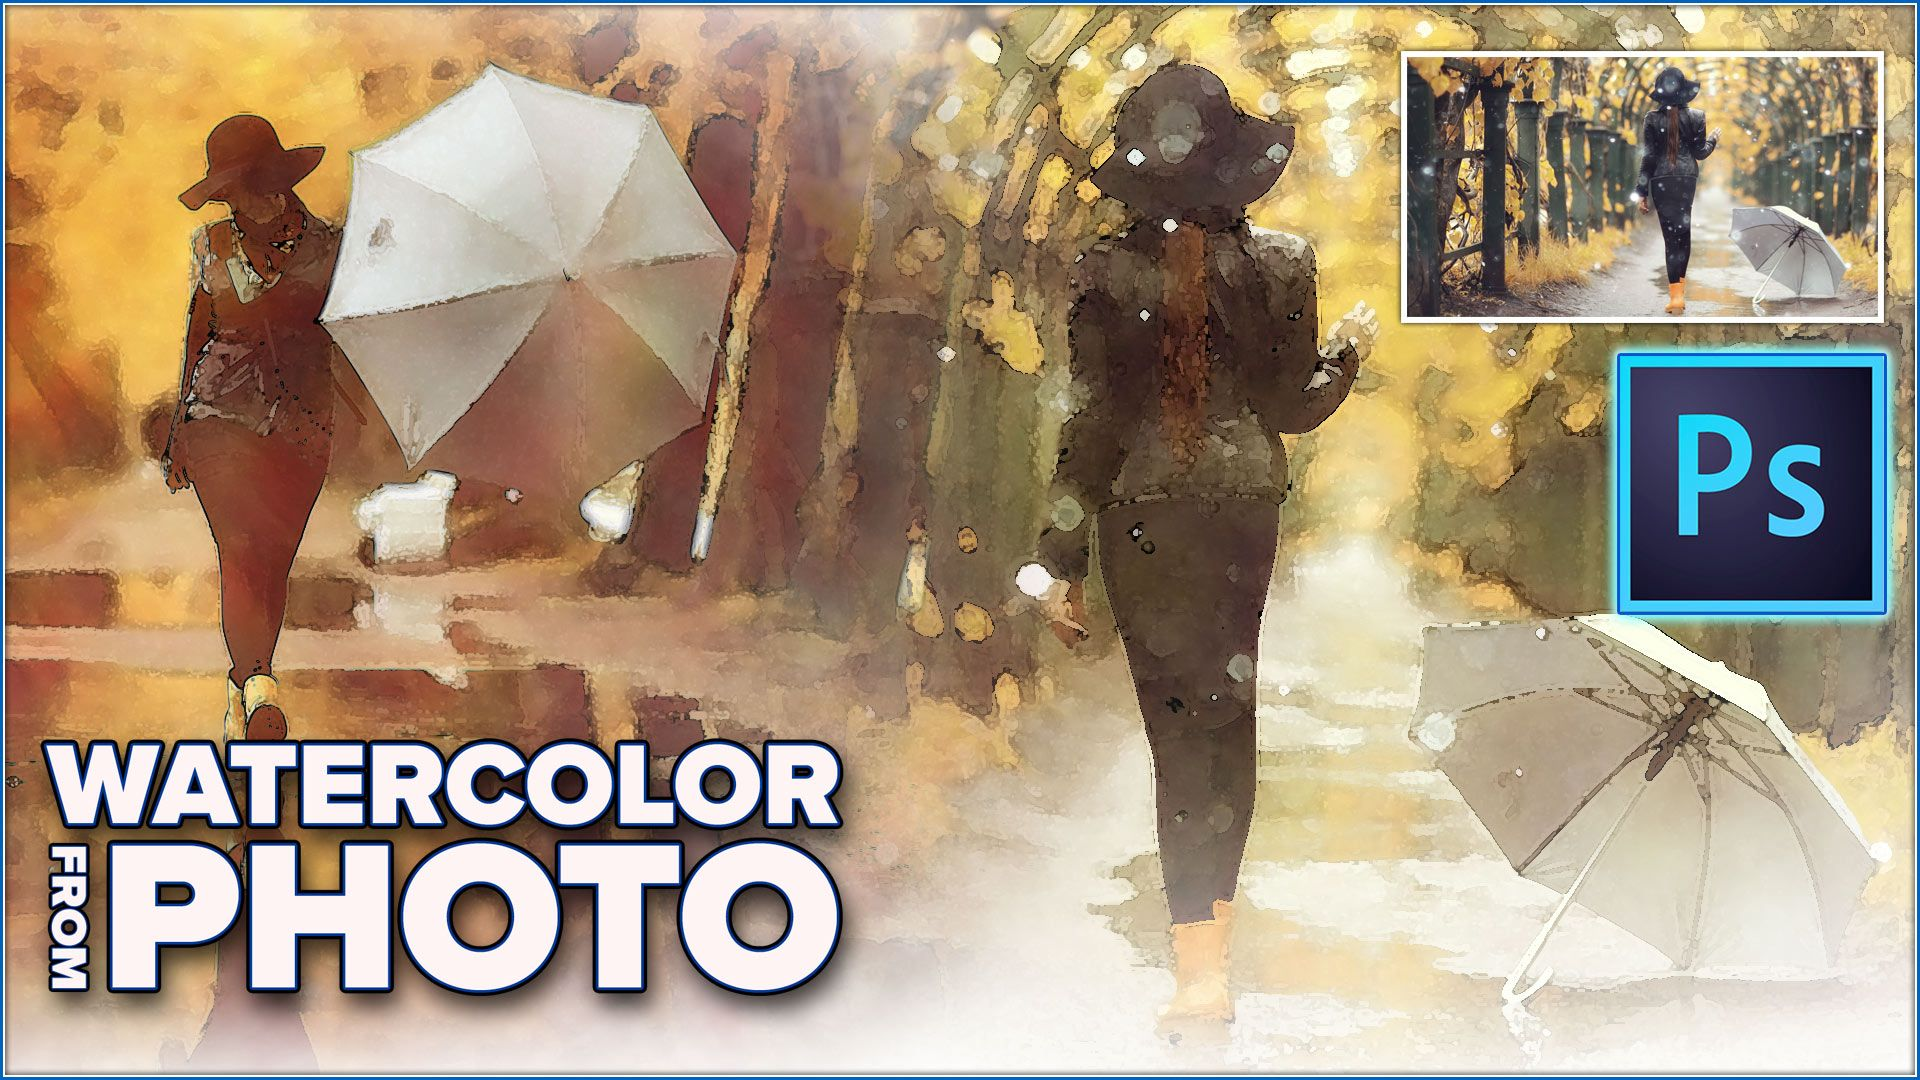 How To Turn Any Photo Into A Watercolor Painting In Photoshop